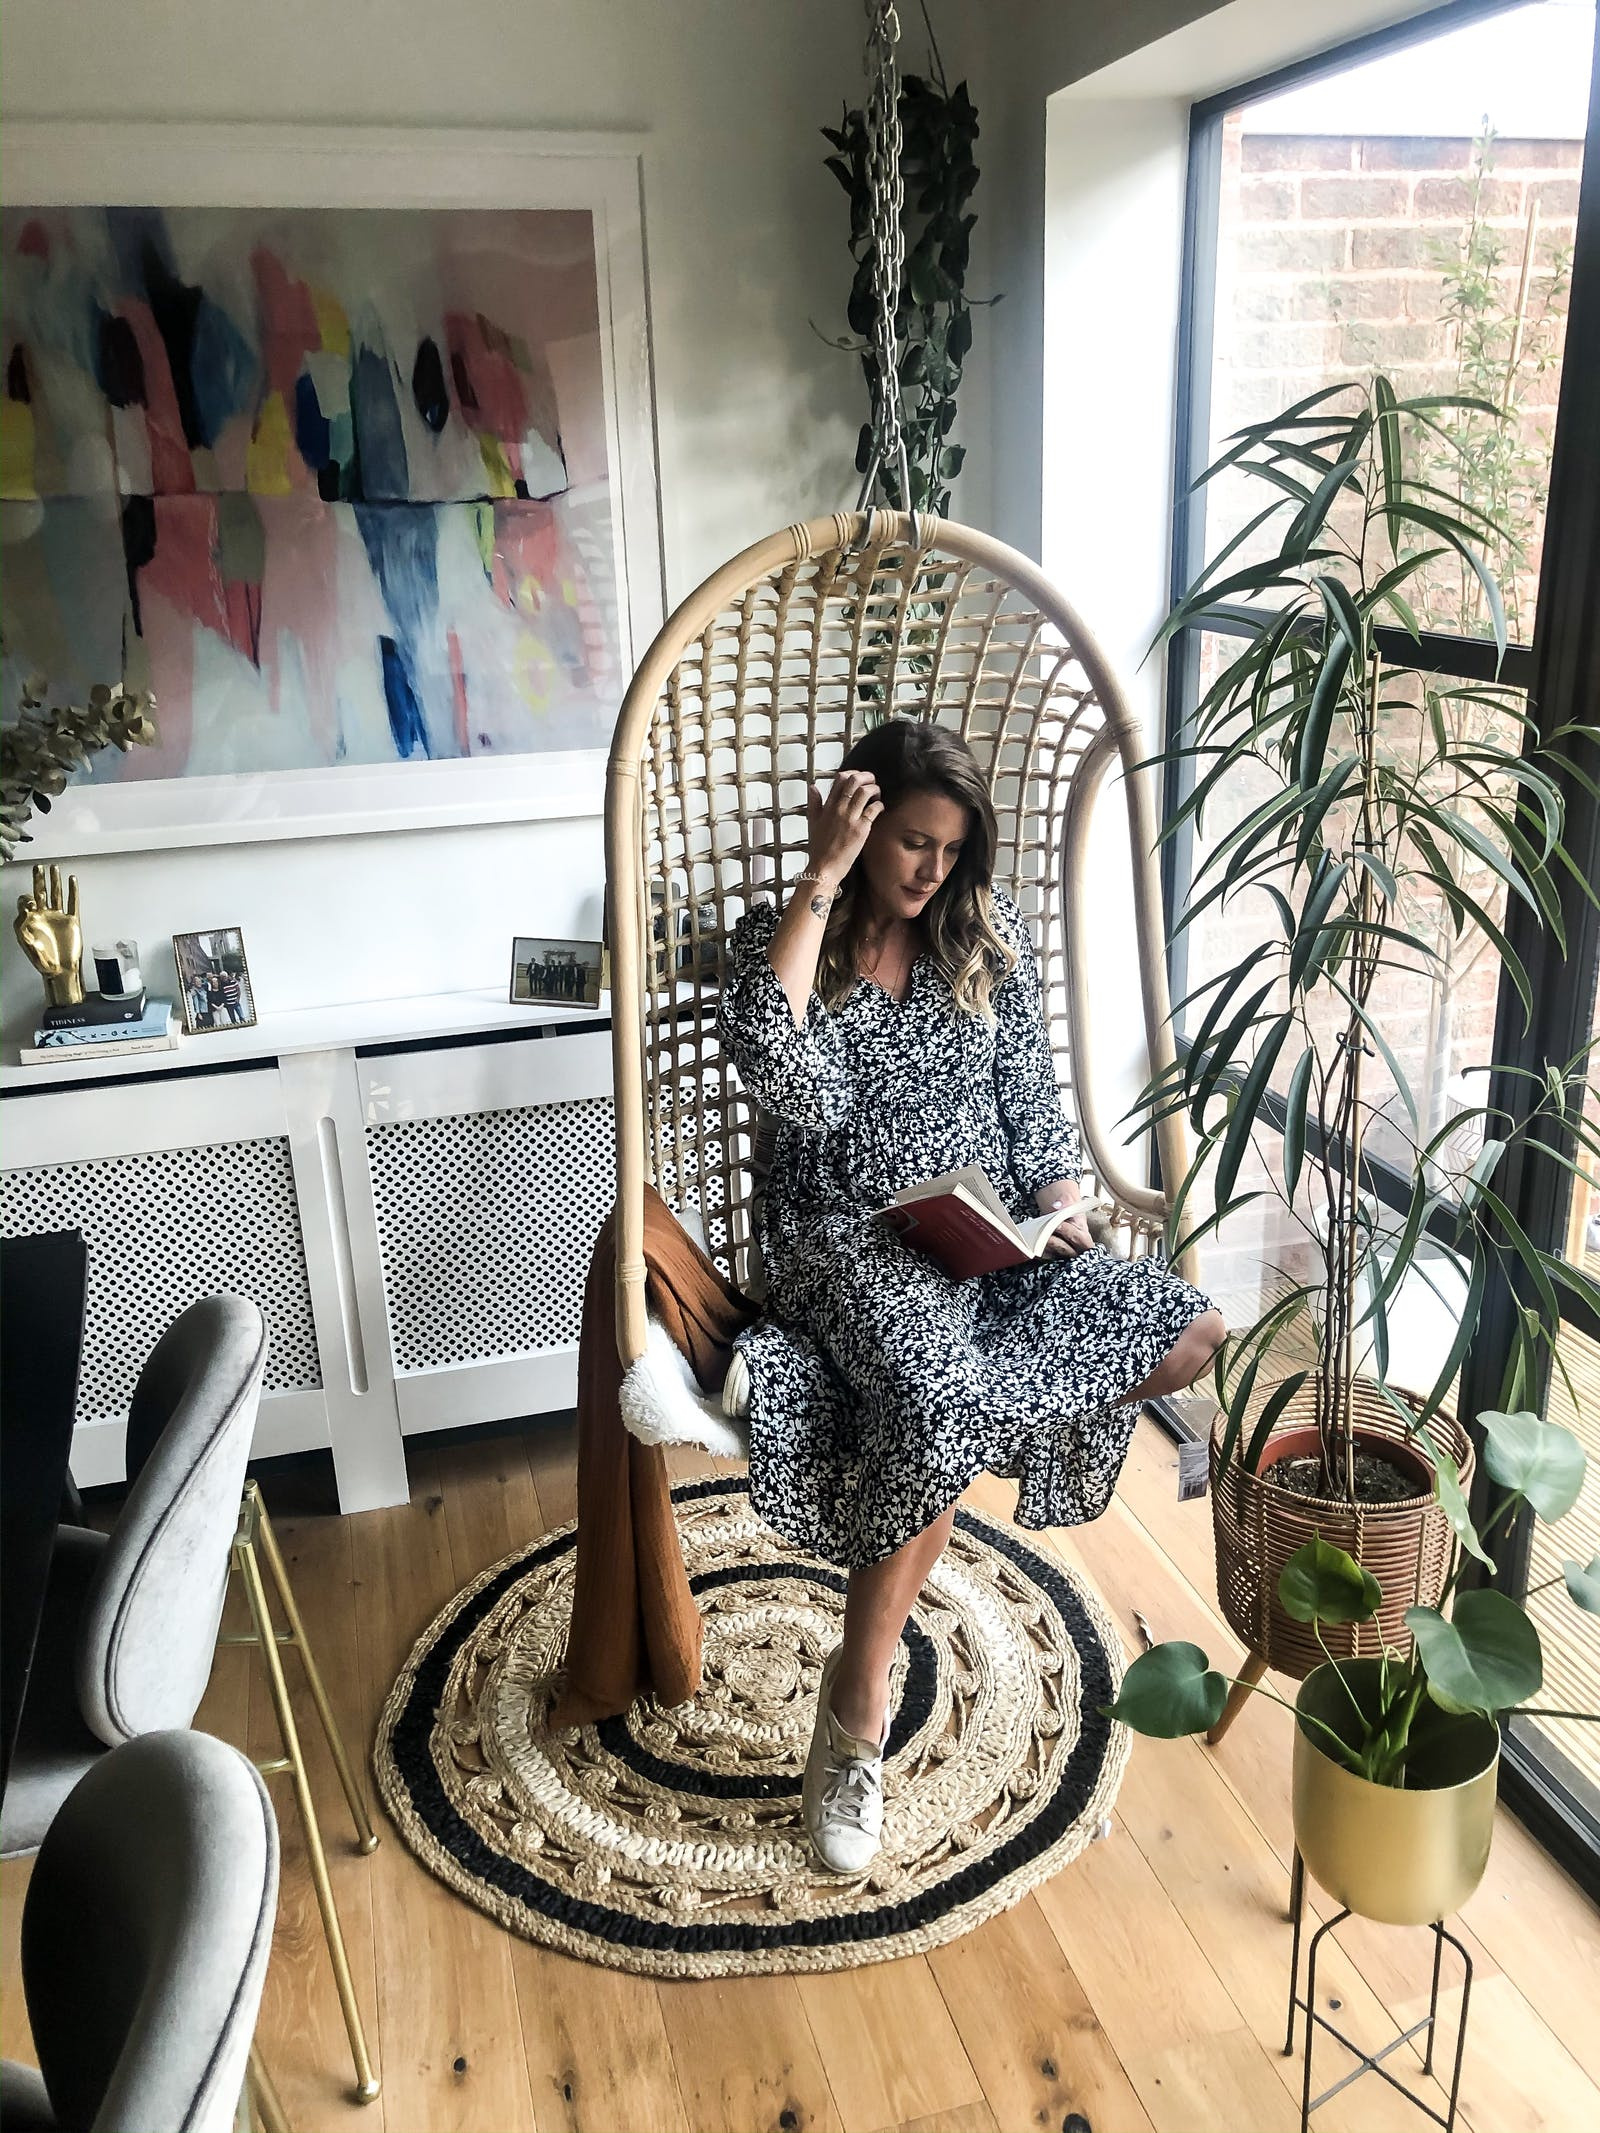 A woman sitting in a rattan chair swing and reading a book, with an abstract colourful painting behind her